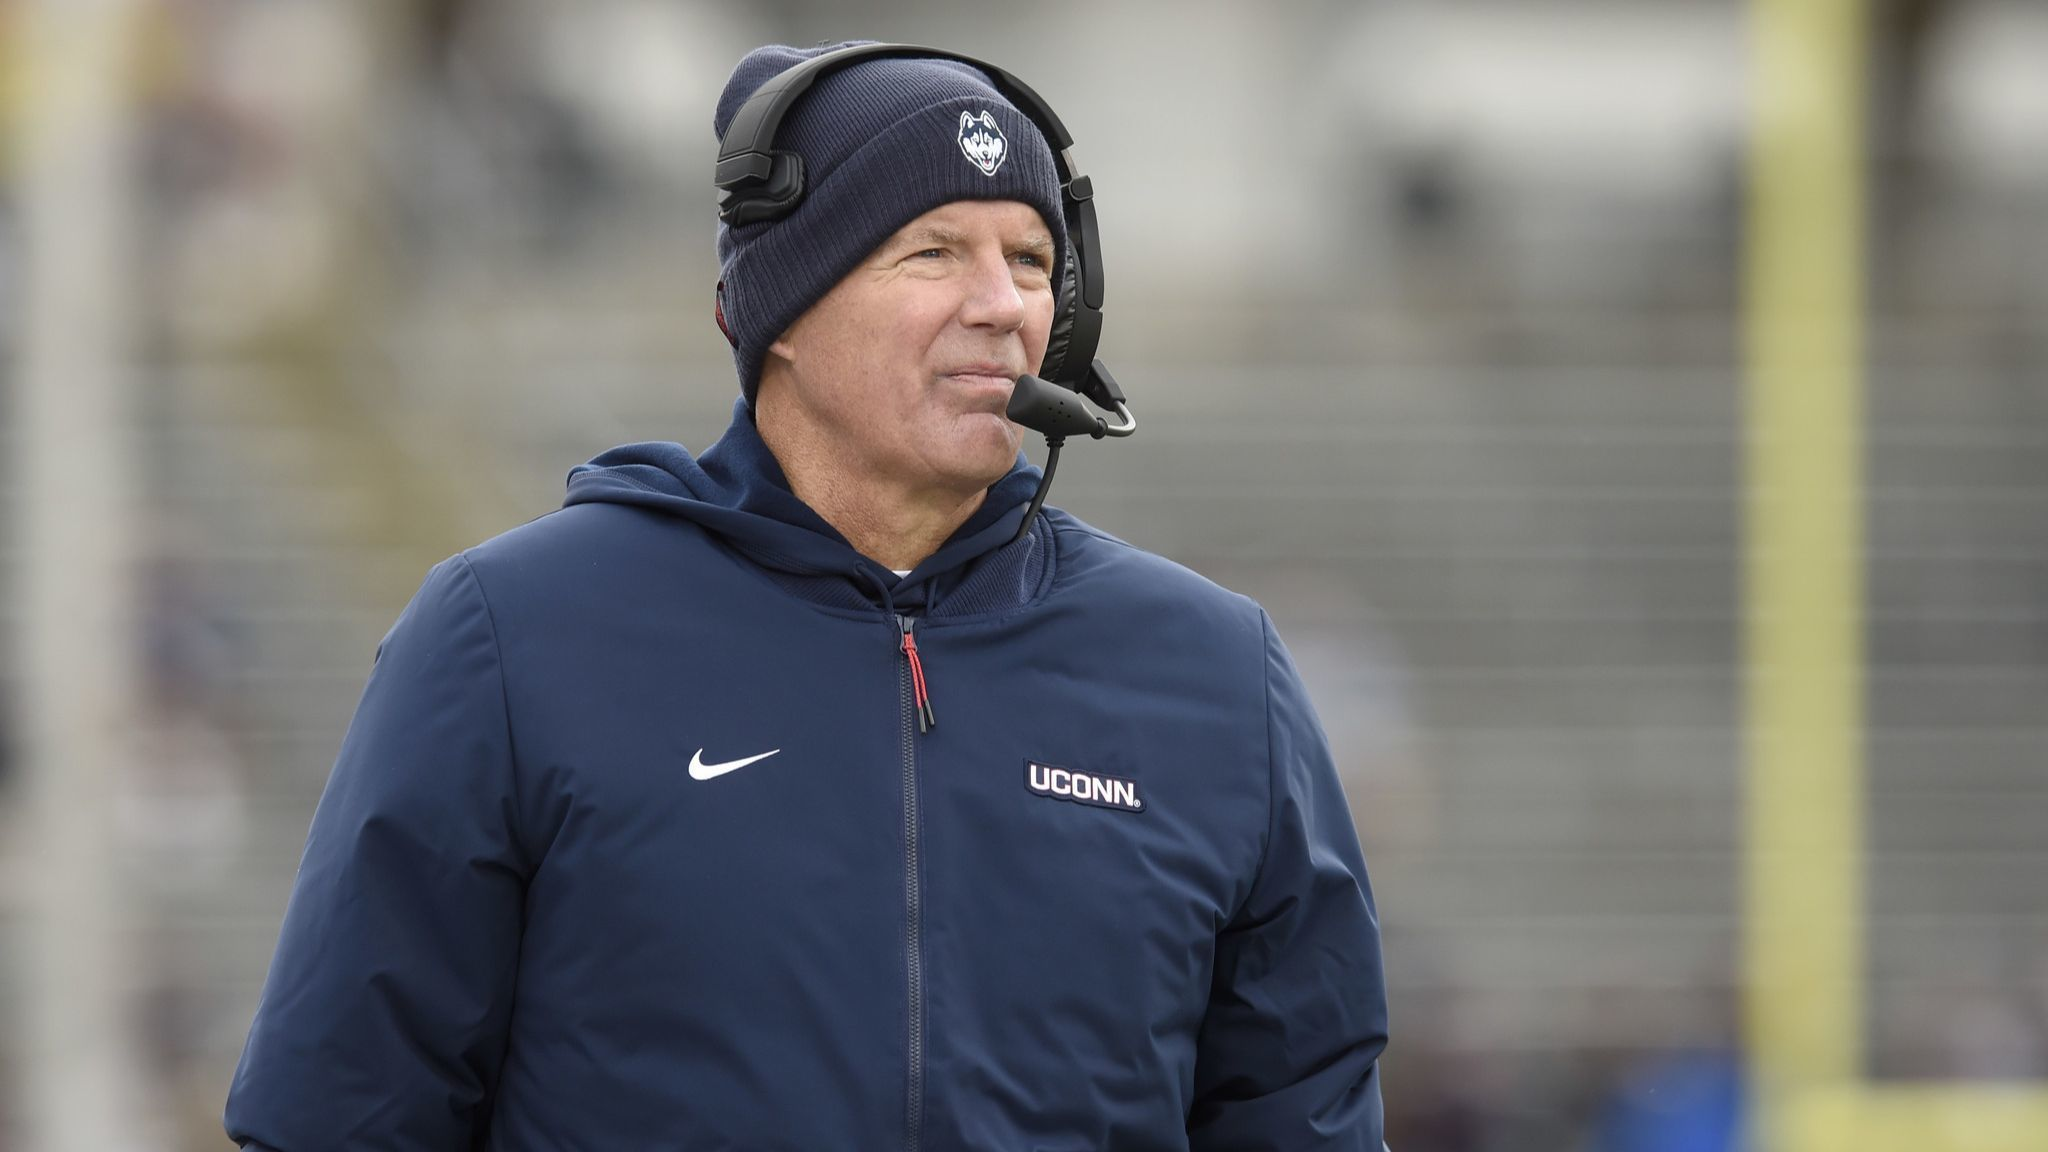 Randy Edsall praises UConn offense, says 'no excuse' for mistakes on defense, special teams